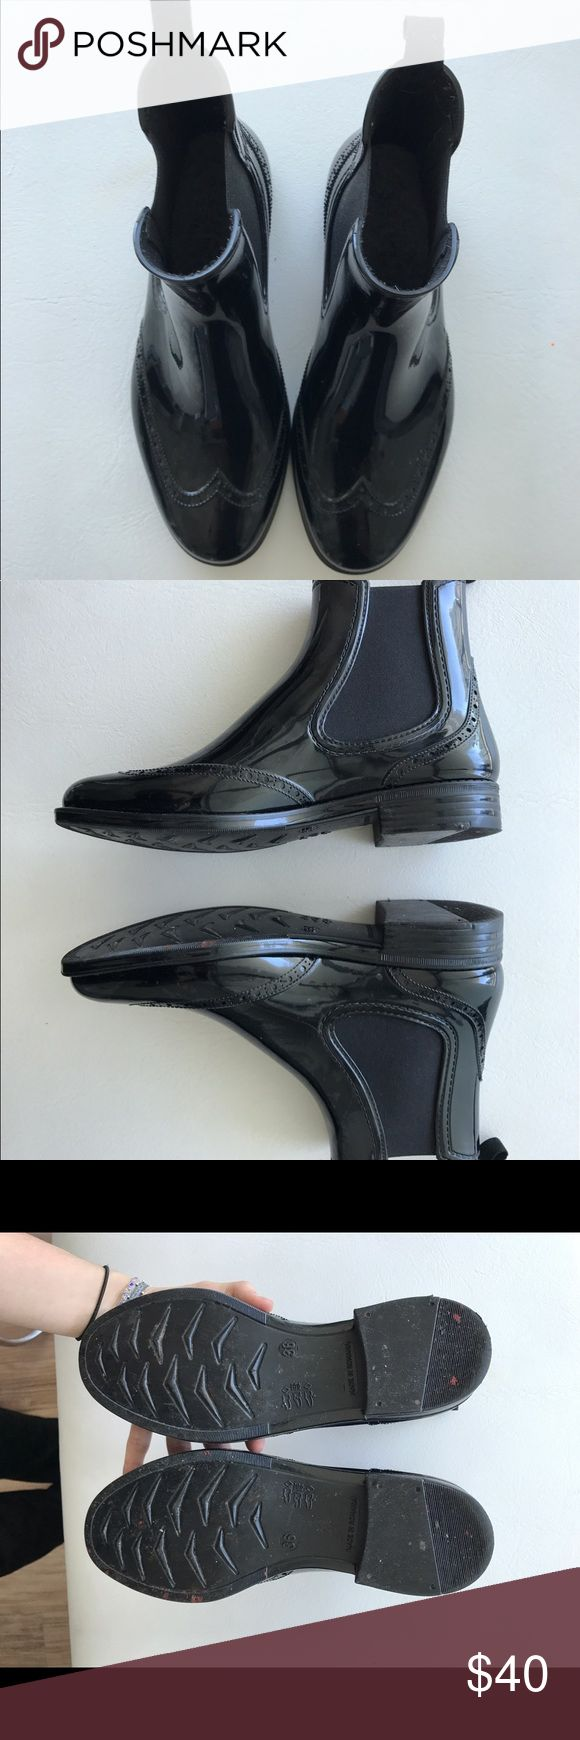 Barneys NY patent chelsea rain boot *CLEAR WORN* Easily wiped down/cleaned. Size US 6/EU 36 but fits a US 6.5/EU 37. Very useful for rainy weather! Barneys New York Shoes Winter & Rain Boots